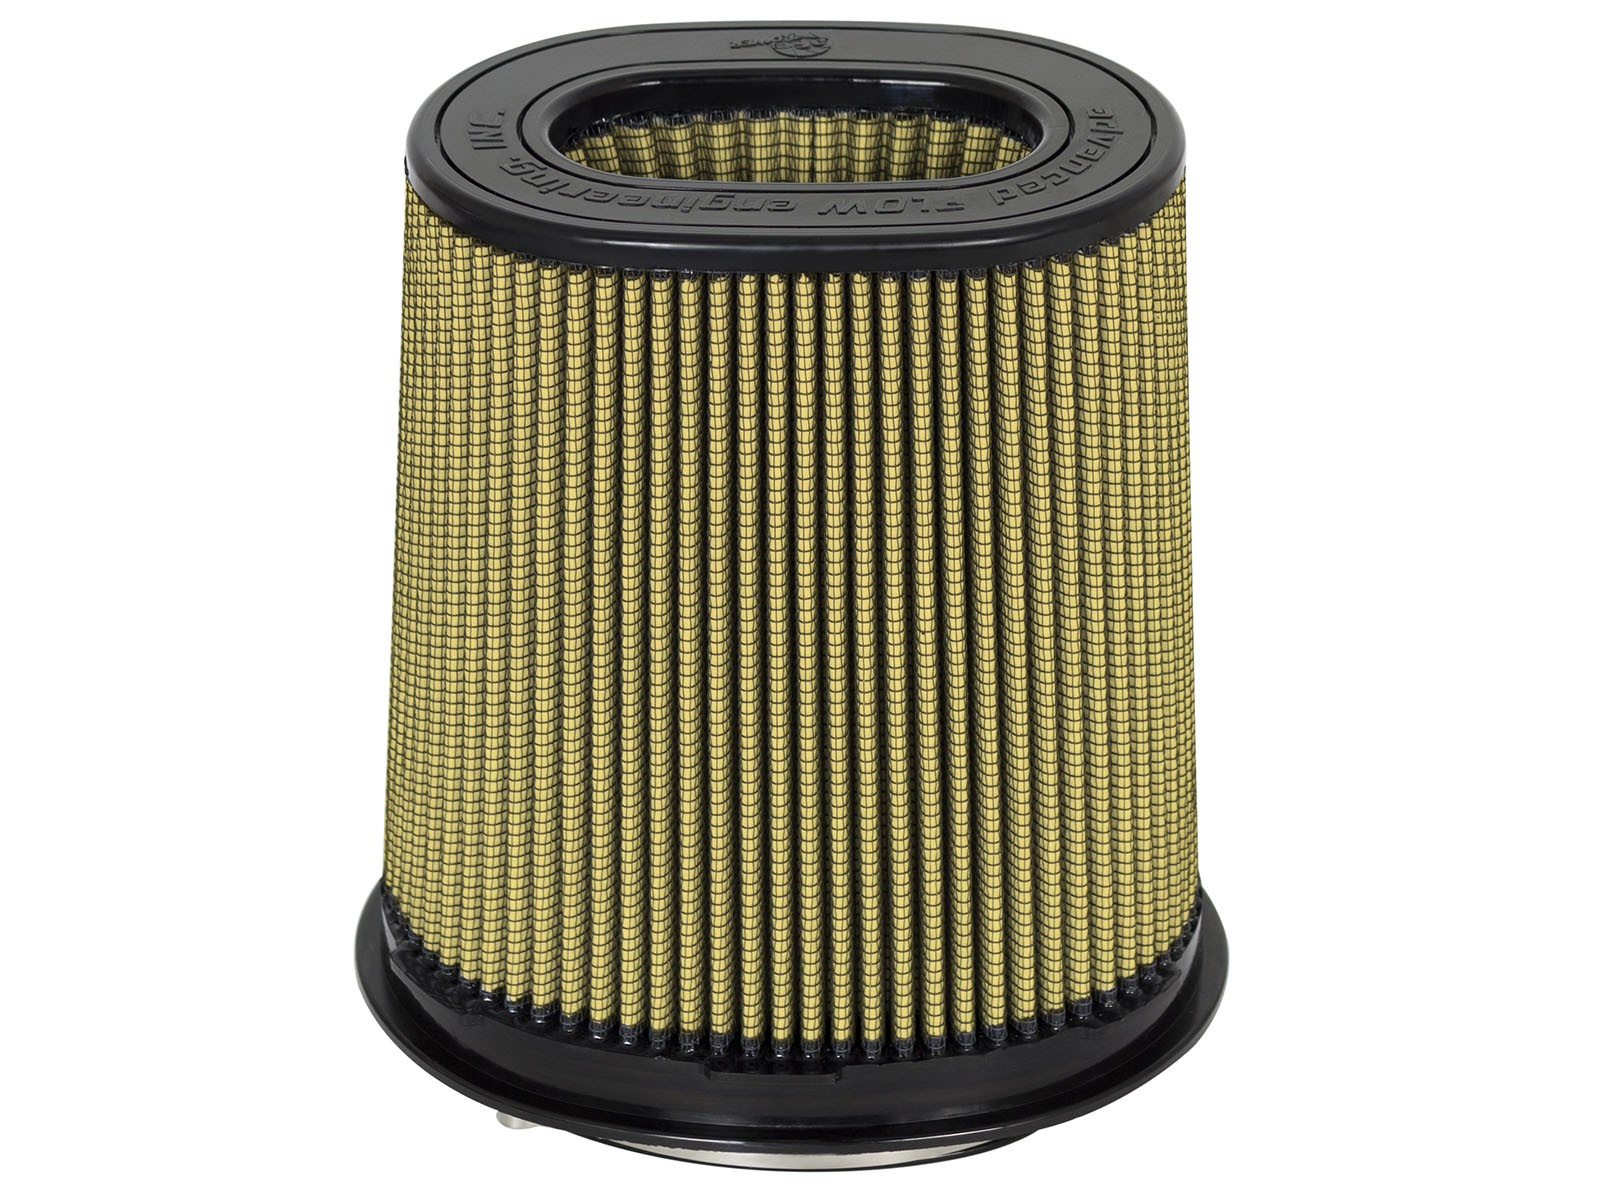 aFe POWER 72-91105 Magnum FLOW Pro GUARD7 Air Filter